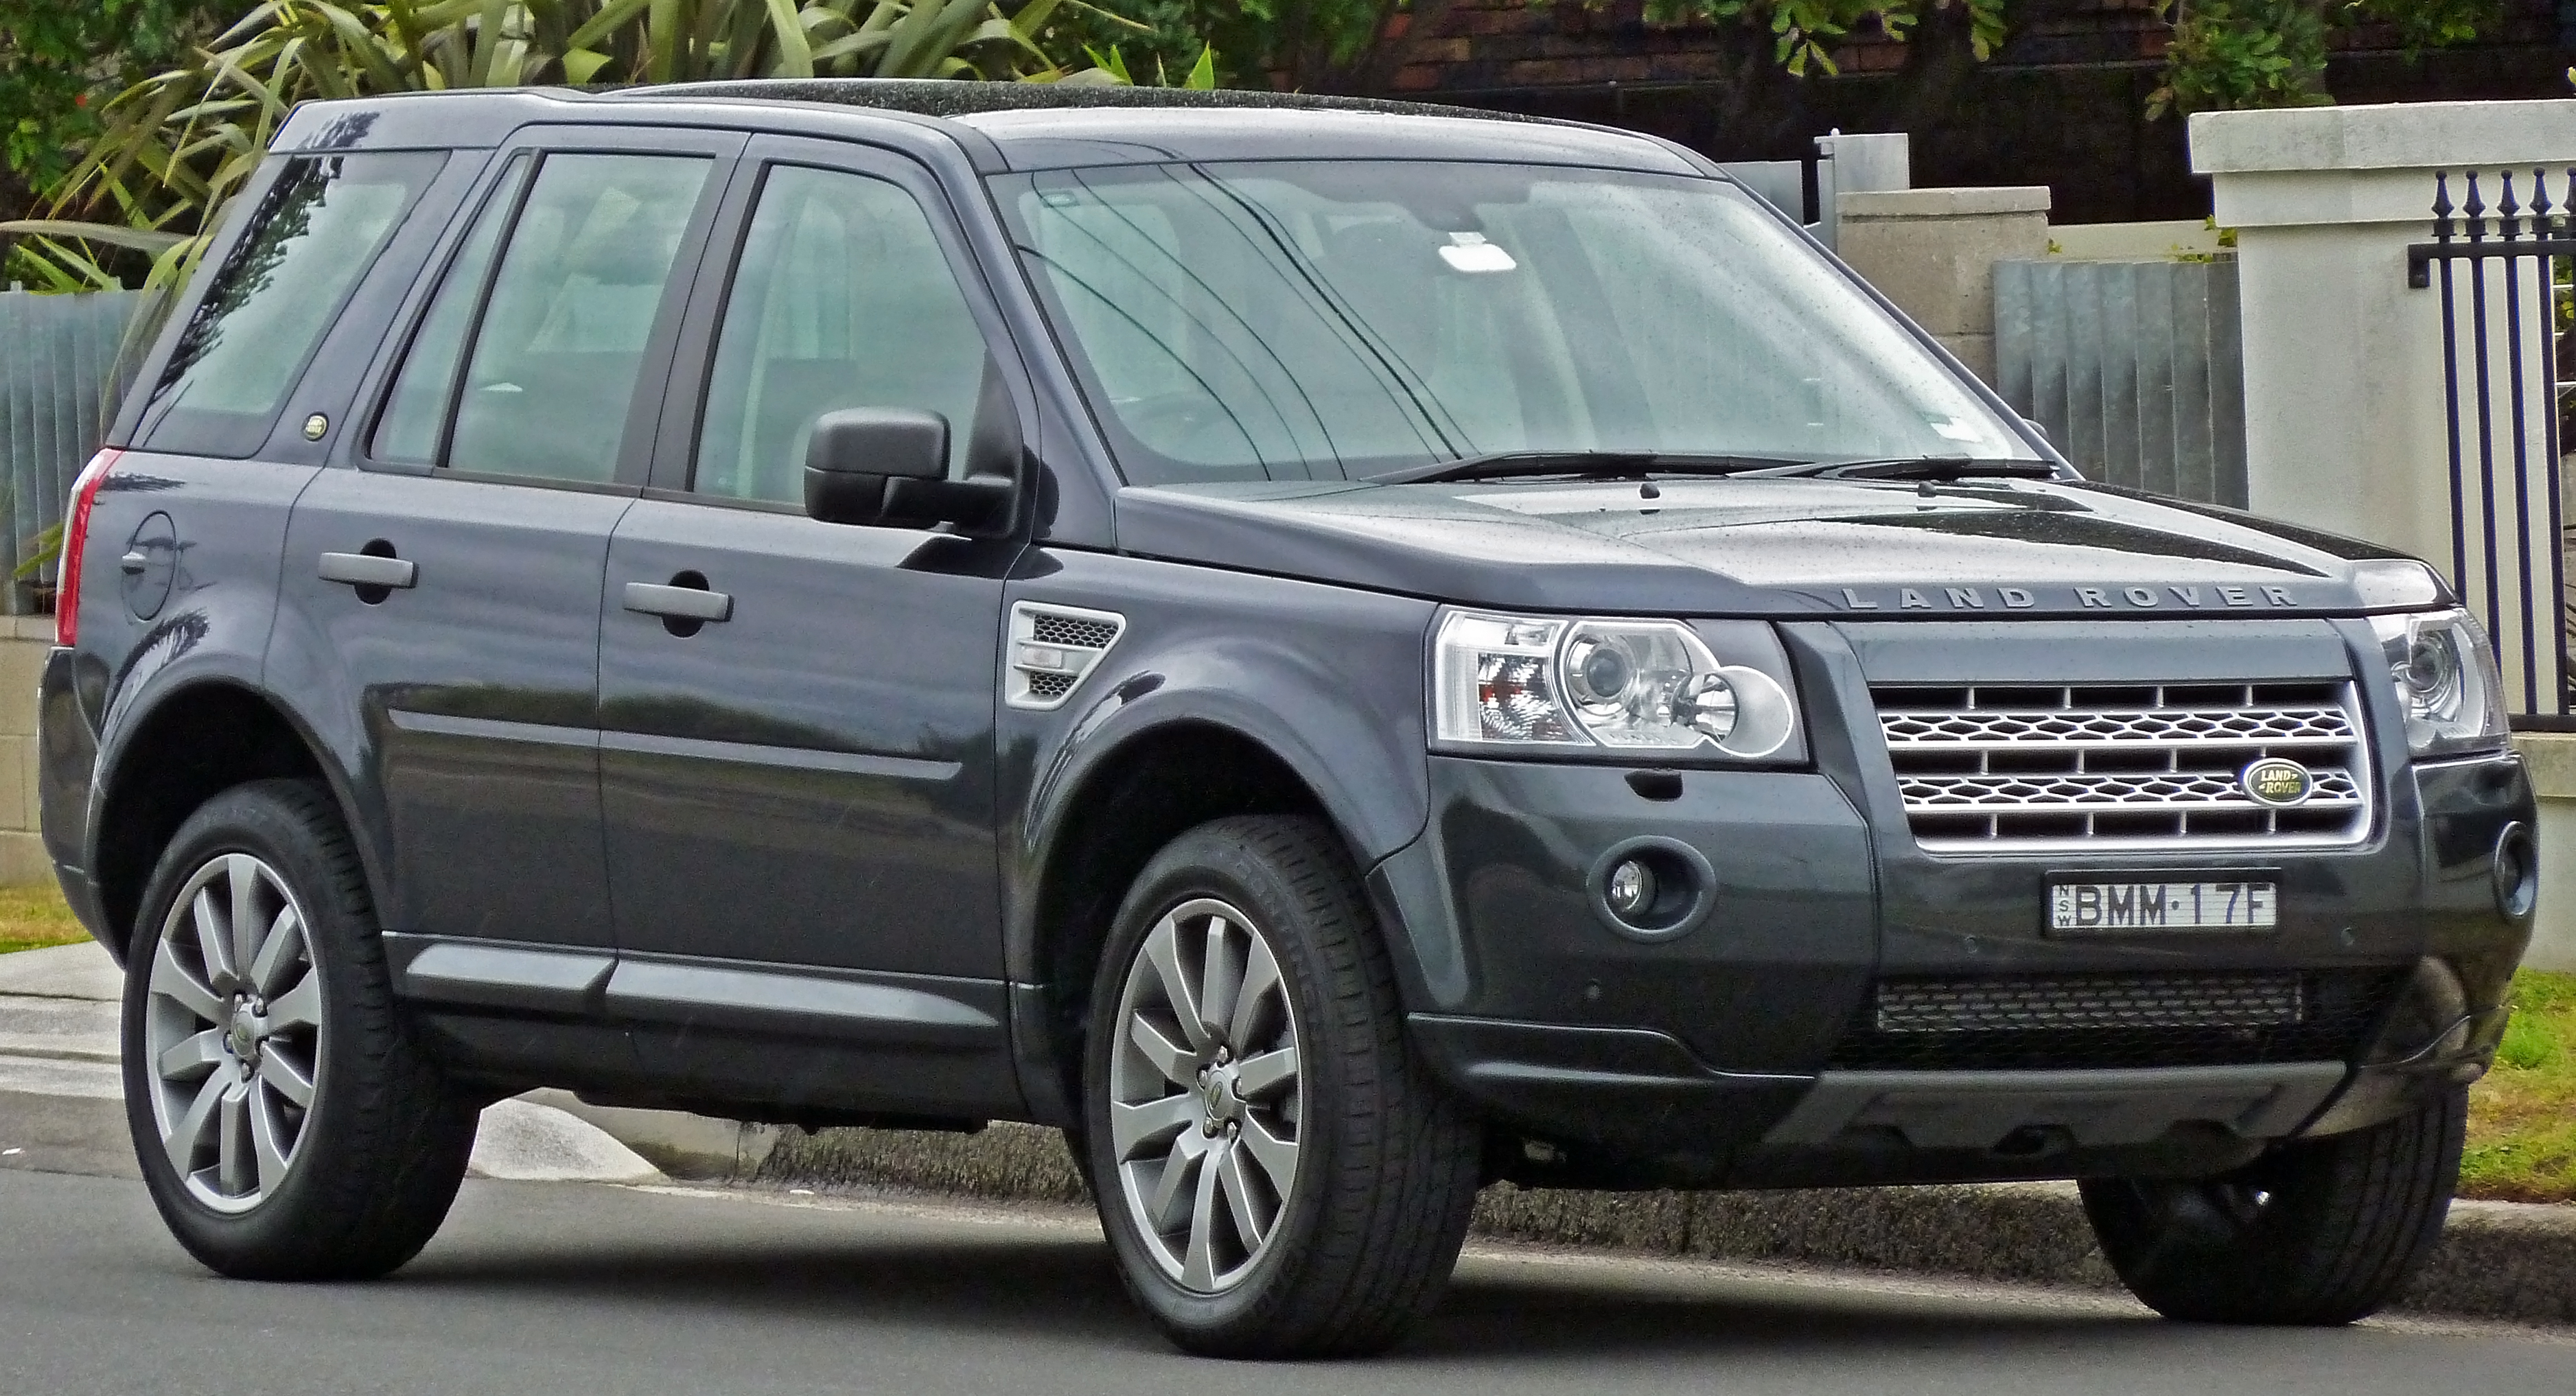 datei 2007 2010 land rover freelander 2 lf hse td4 wagon wikipedia. Black Bedroom Furniture Sets. Home Design Ideas